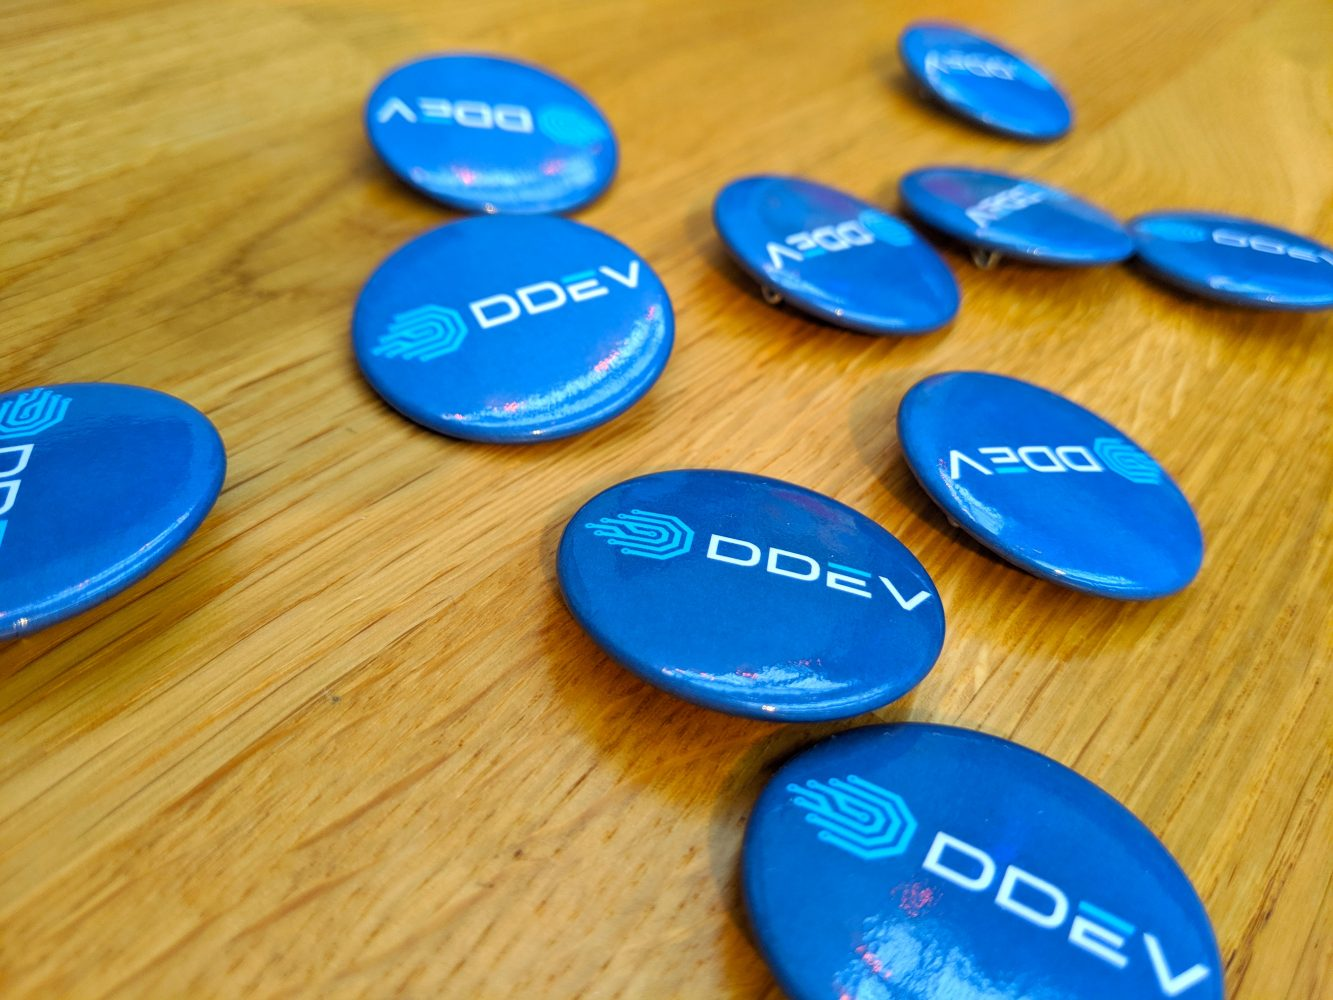 DDEV swag logo buttons